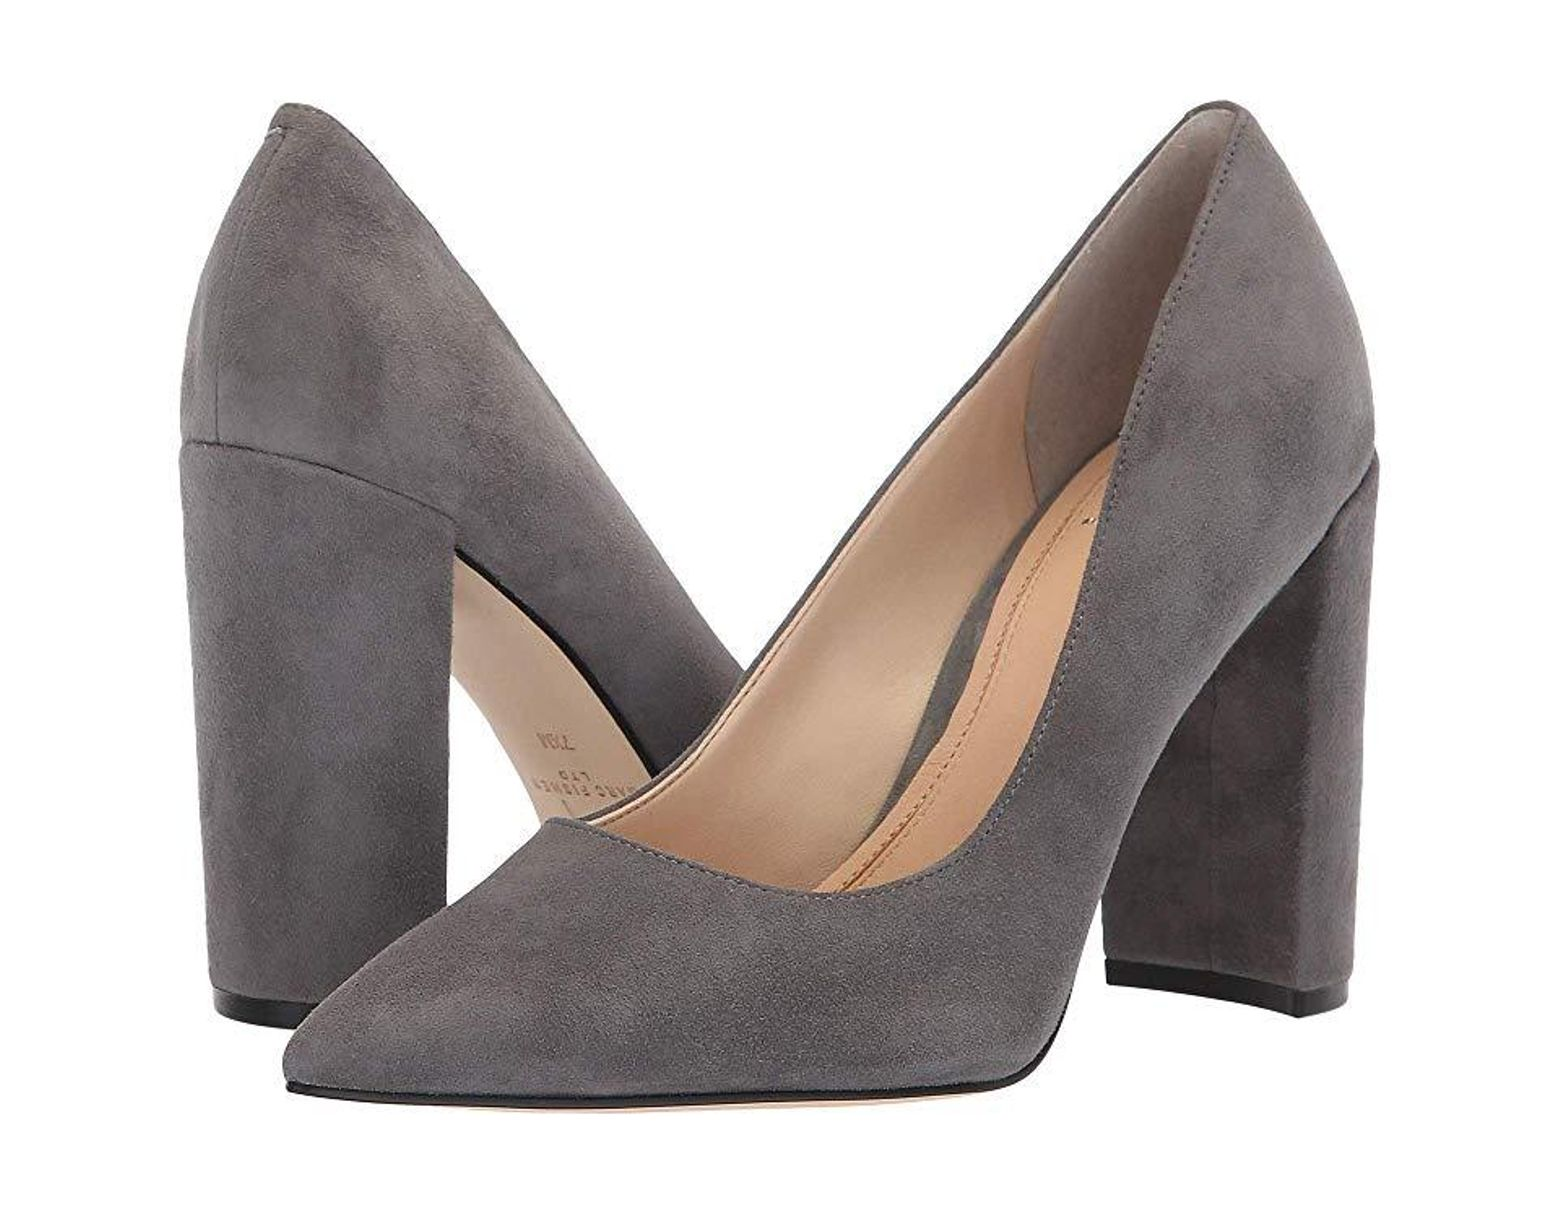 b7e901faf Marc Fisher Elia (dark Grey Suede) Shoes in Gray - Save 70% - Lyst